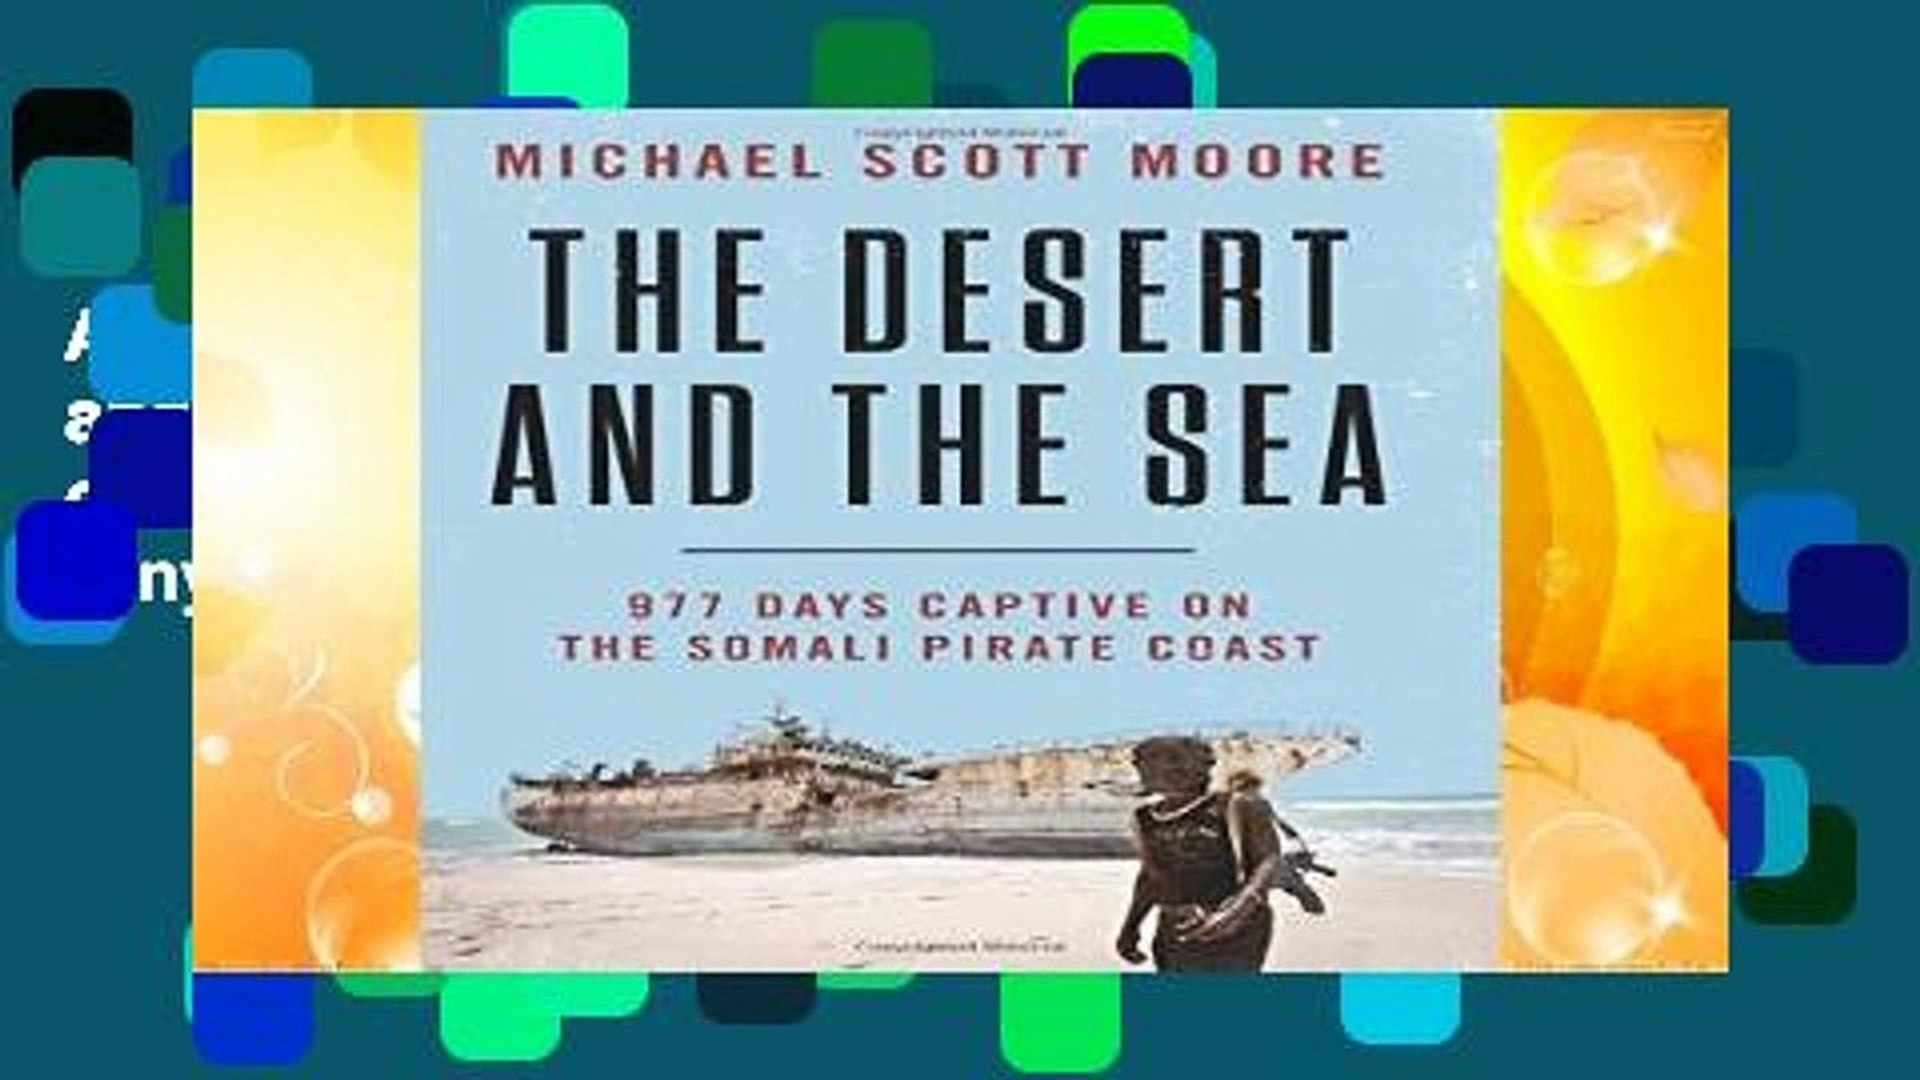 About For Books  The Desert and the Sea: 977 Days Captive on the Somali Pirate Coast  Any Format